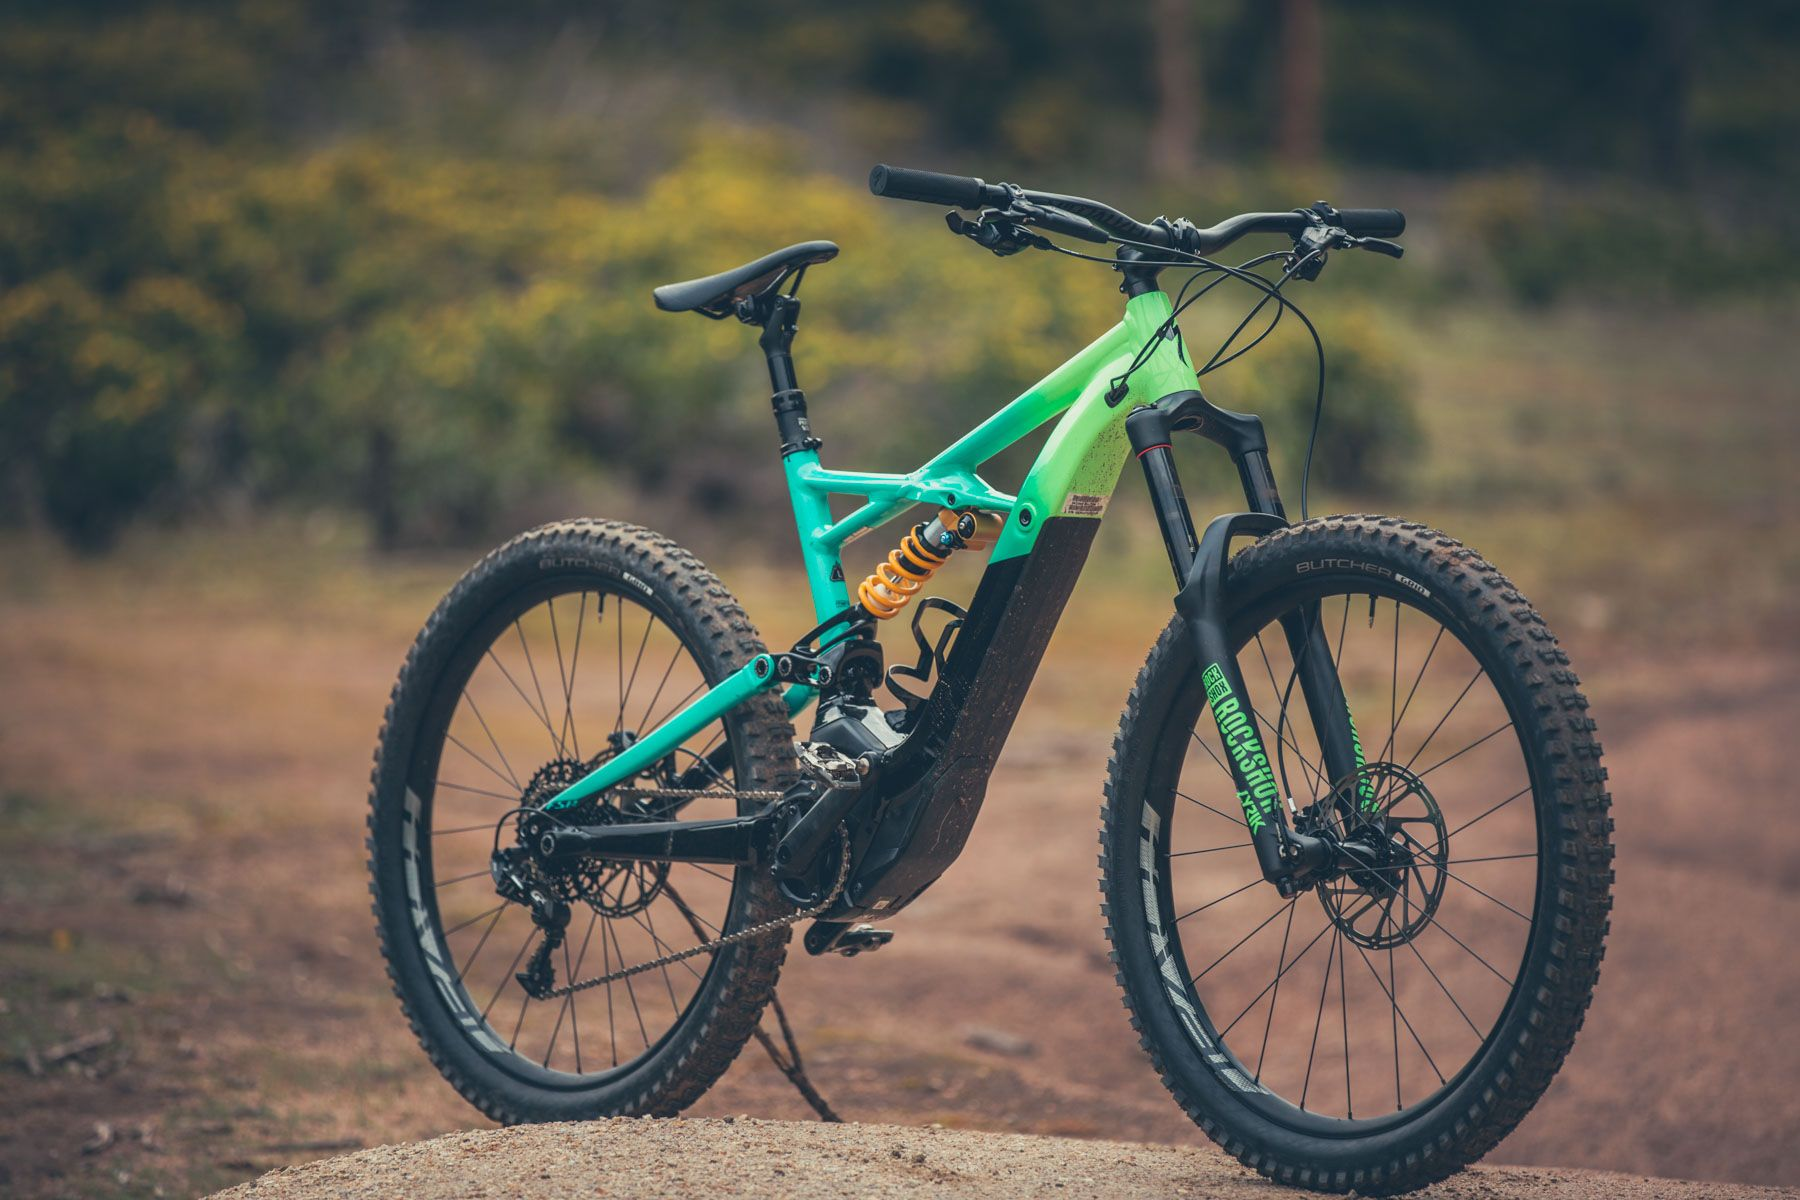 The Mother Of All E Bikes Specializeds Levo Kenevo Is Here Flow Skai Robust Offtheshelf Power Electronics For Emobility Mountain